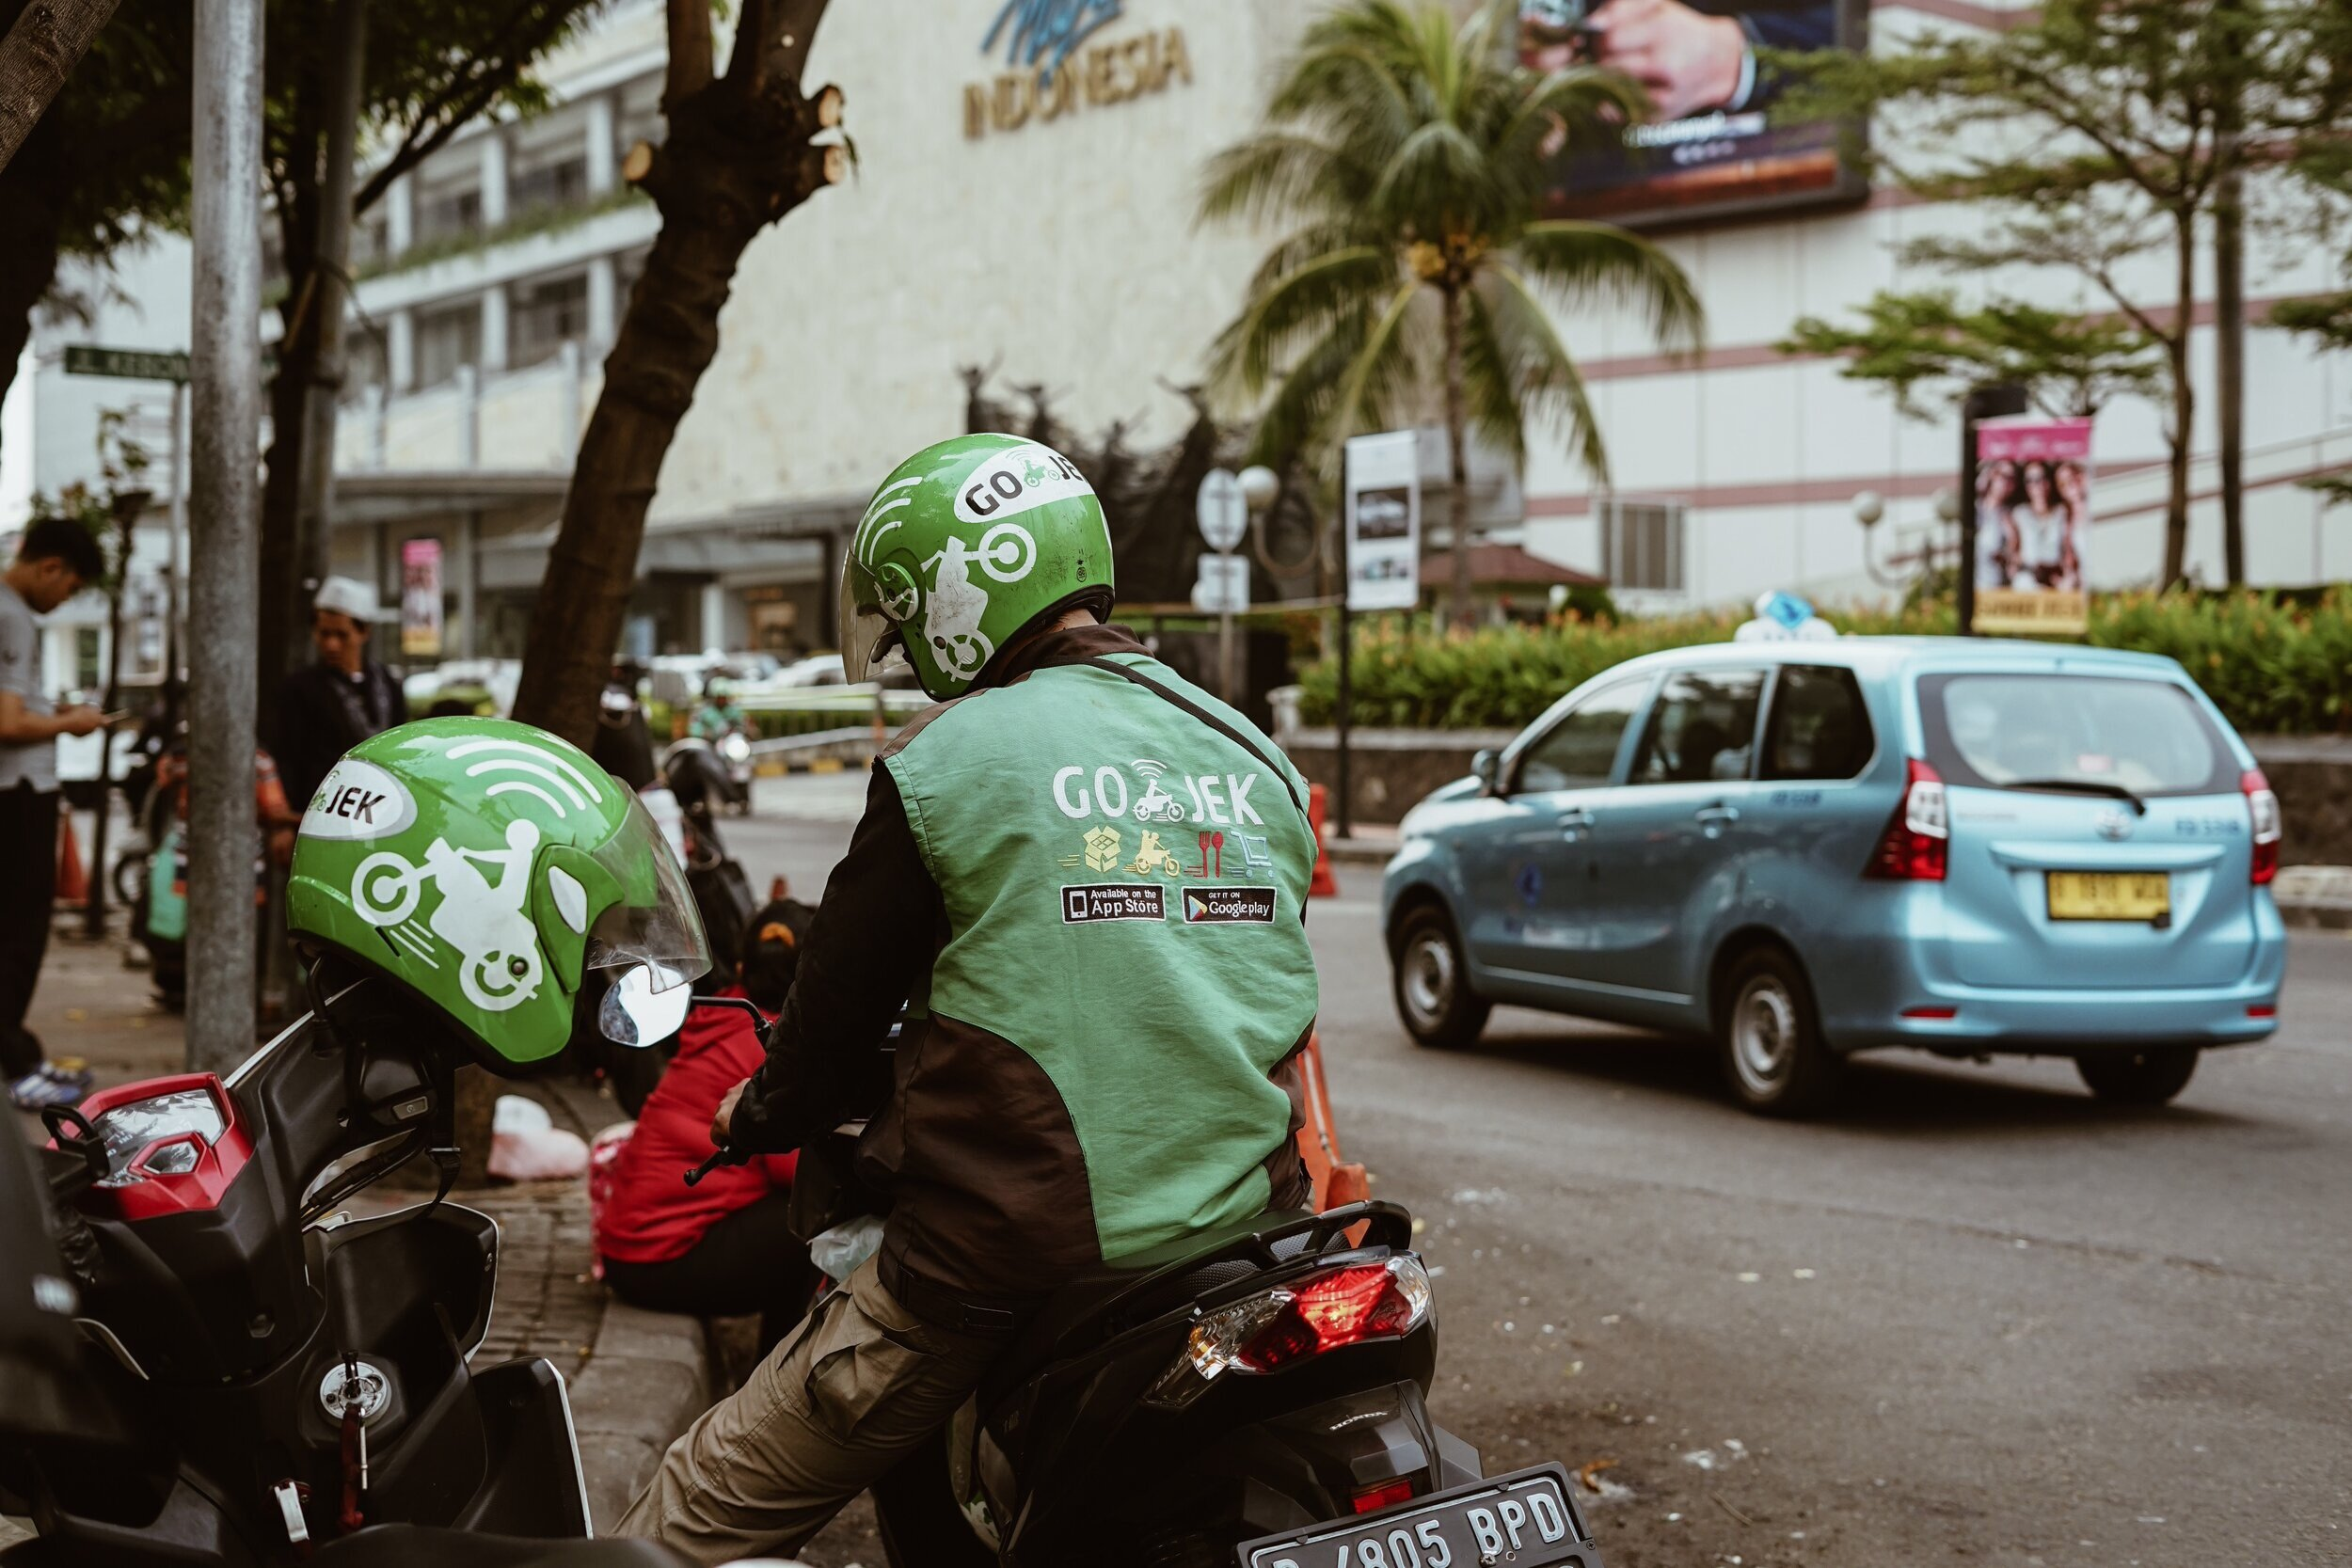 When will GoJek have an IPO?